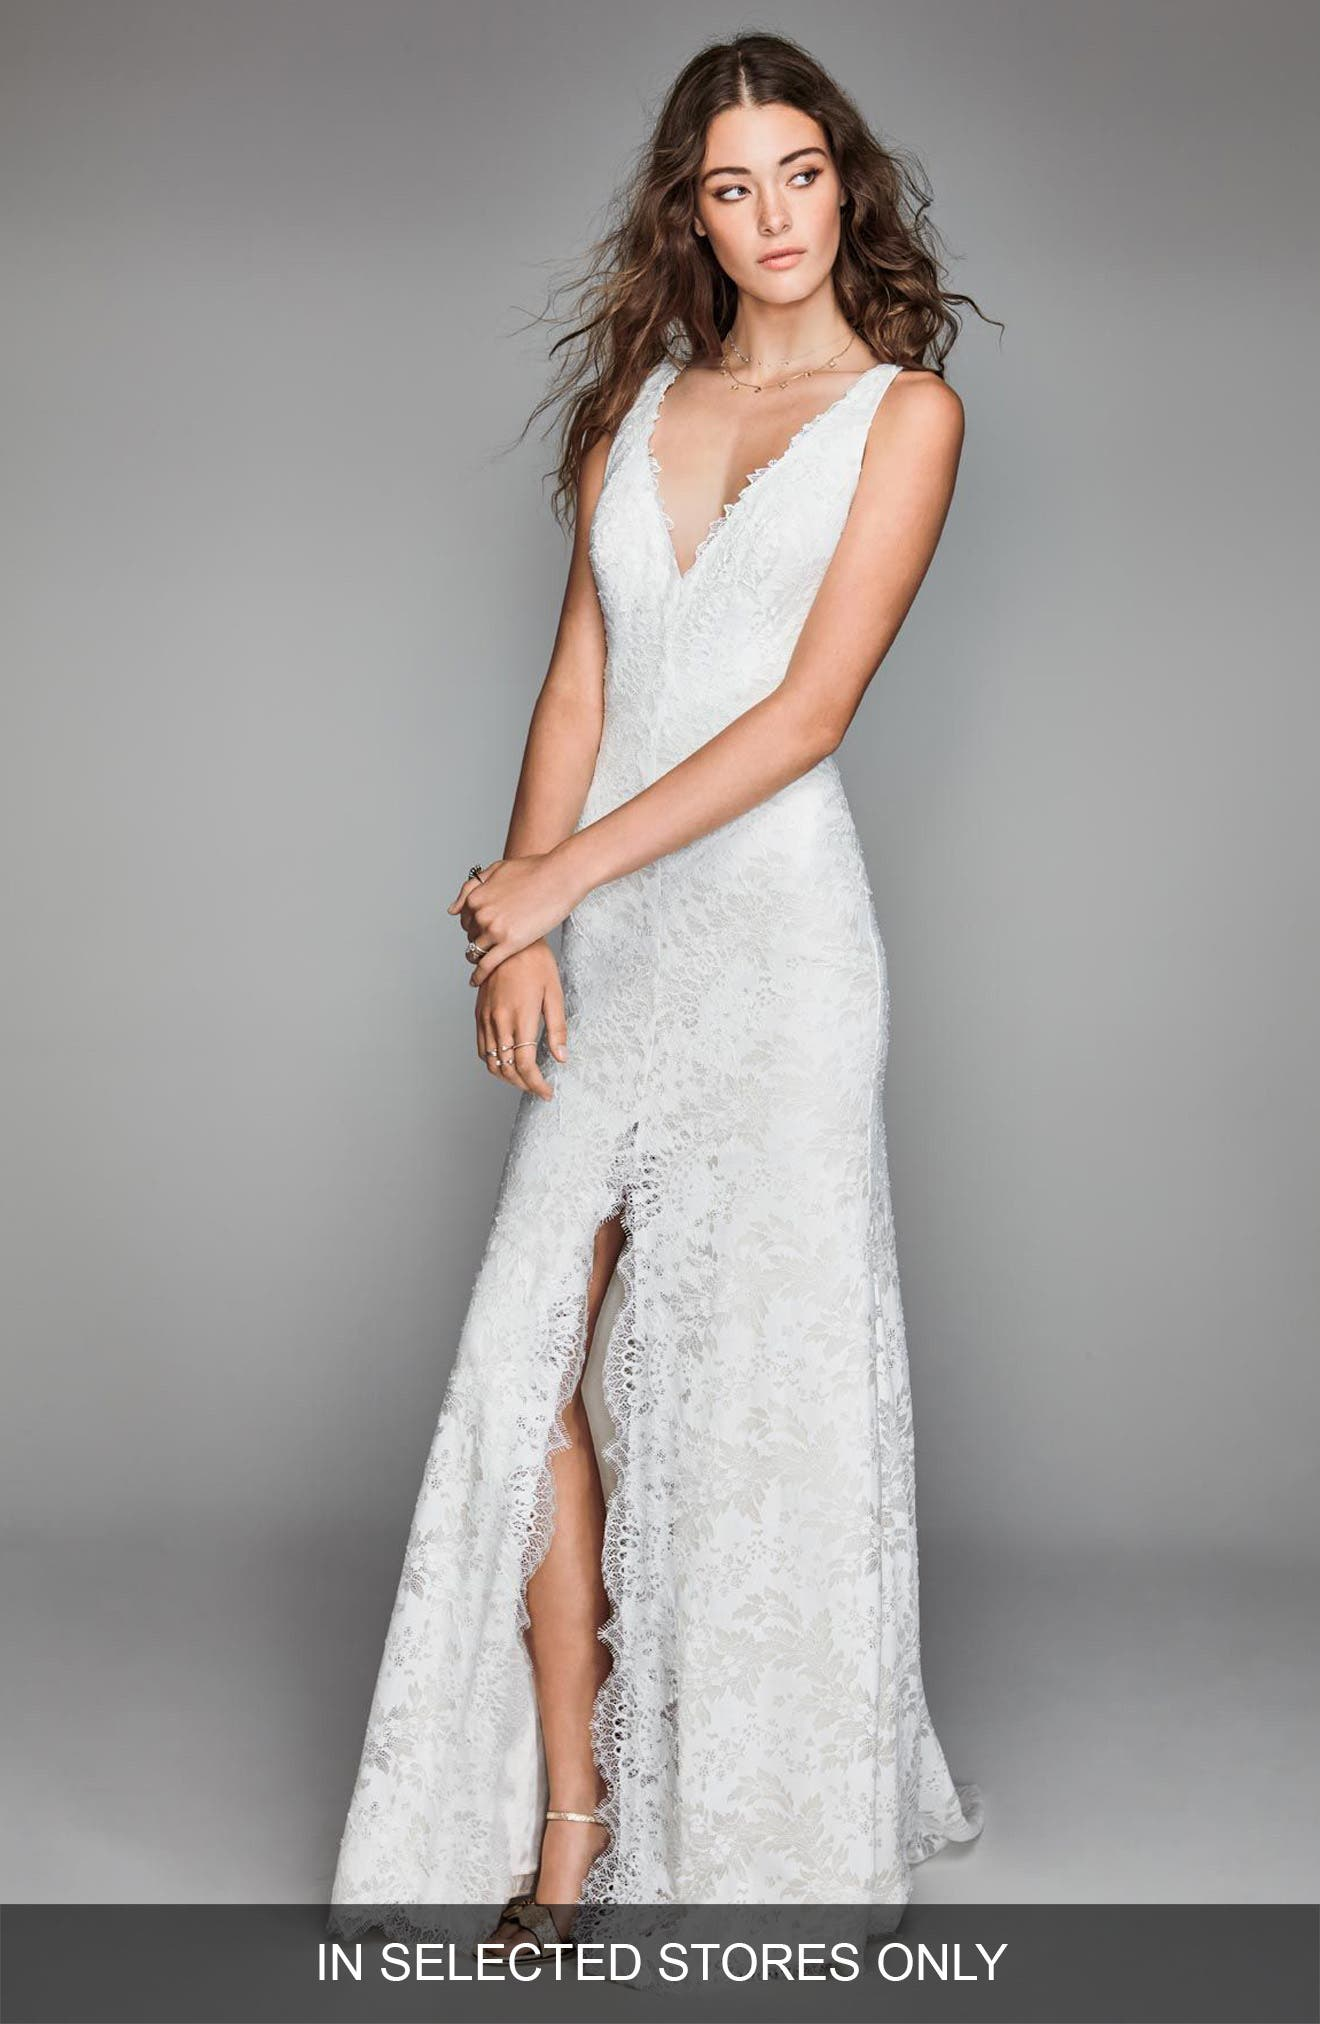 Libra Lace Sheath Gown,                         Main,                         color, Ivory/ Oyster